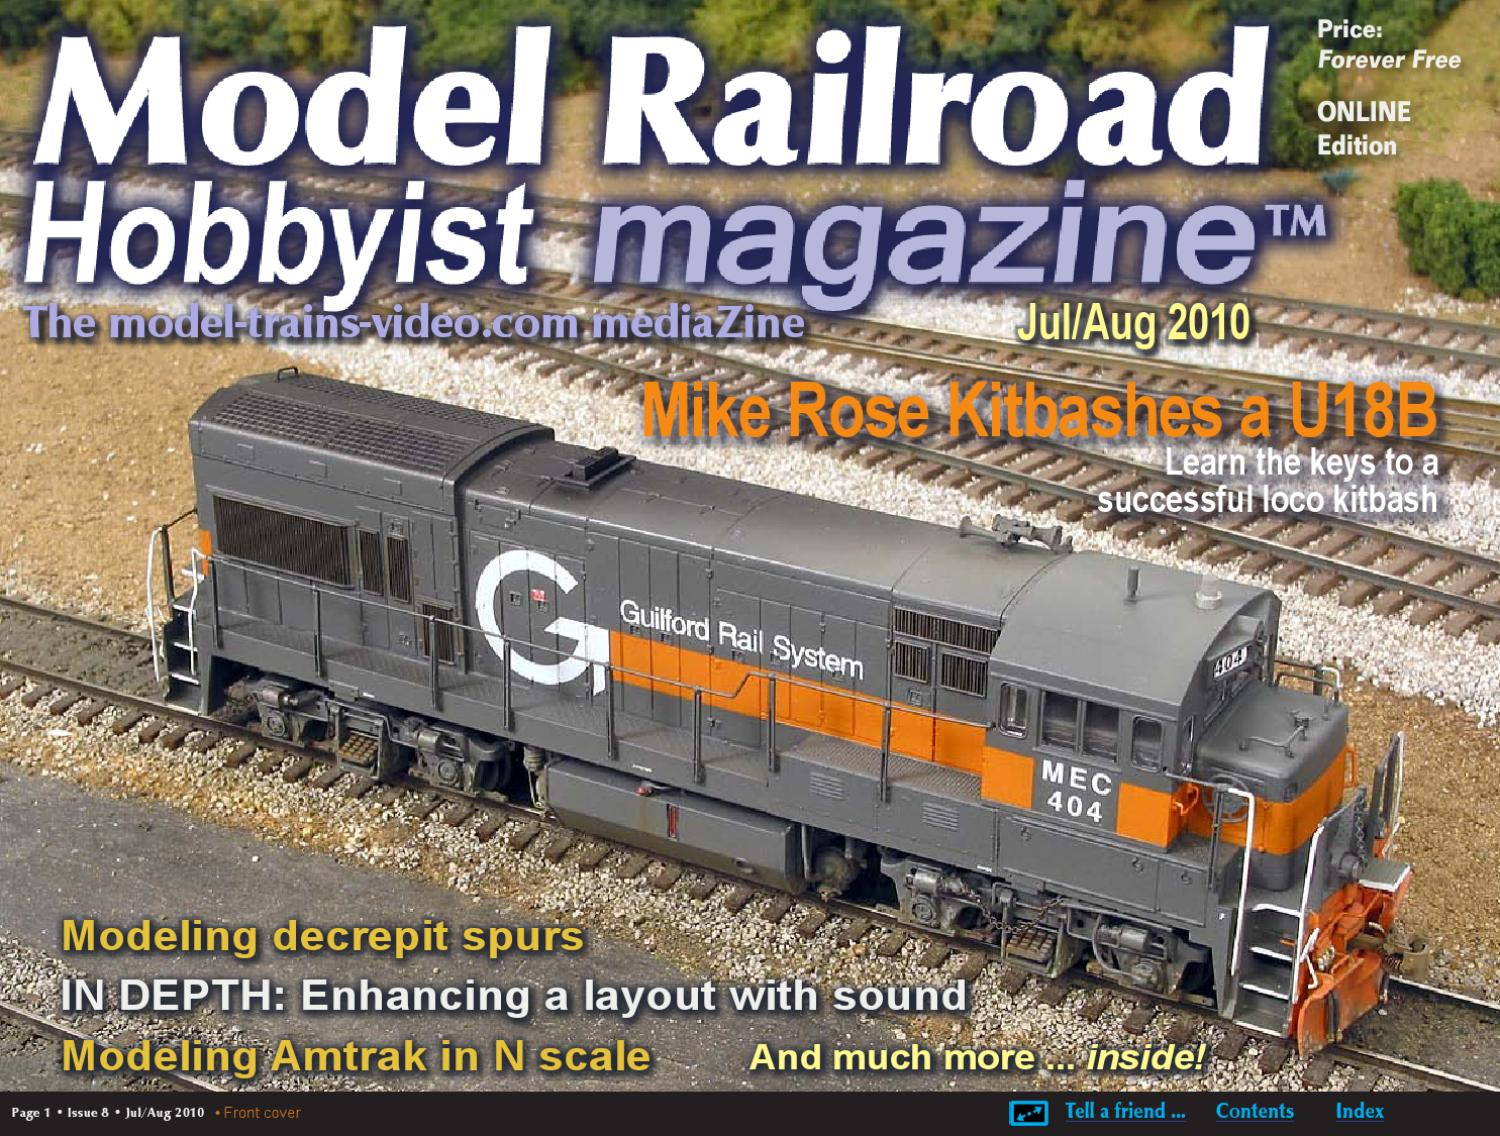 Mrh Jul Aug 2010 Issue 8 By Model Railroad Hobbyist Magazine Issuu Lionel Wiring Control Switch As Well Spst Toggle